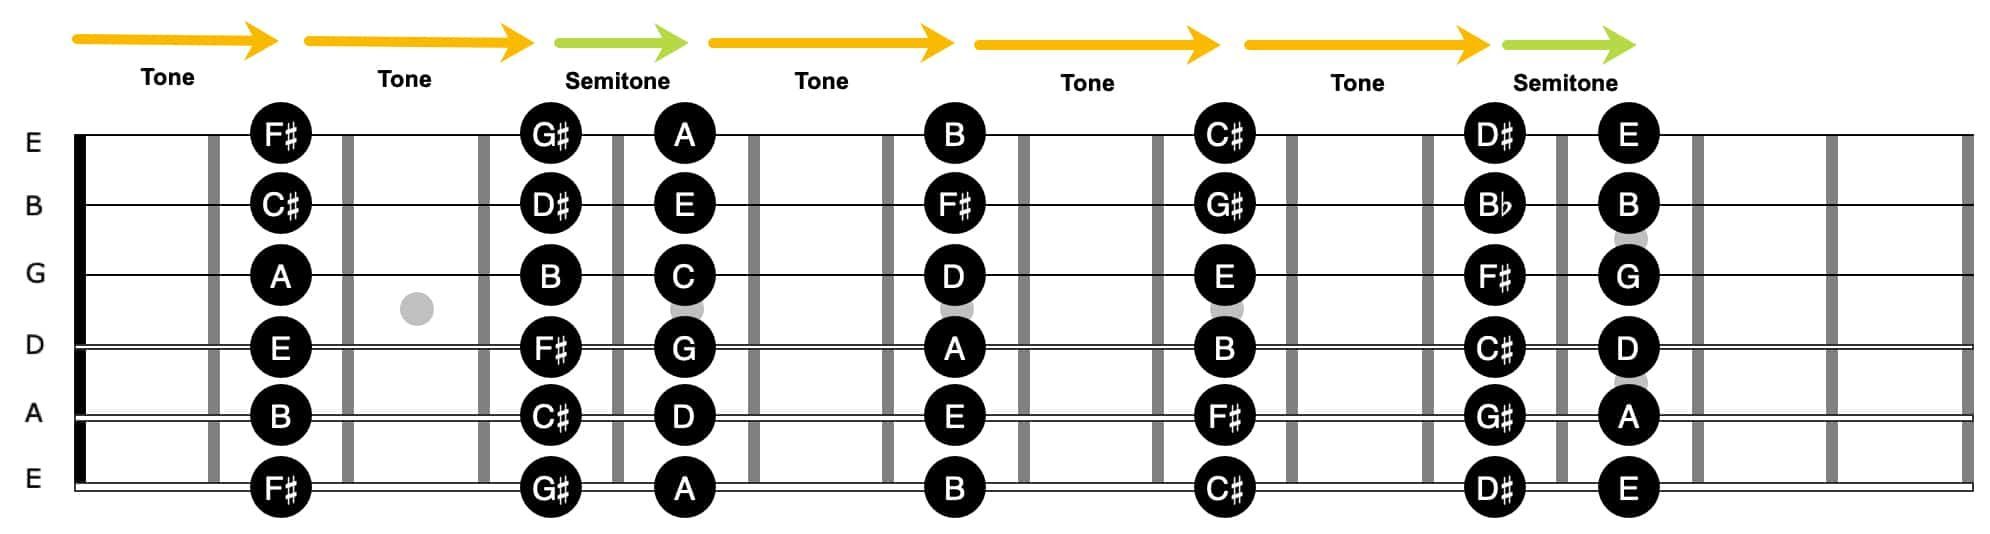 Guitar Fretboard How to Memorize and Find Any Note